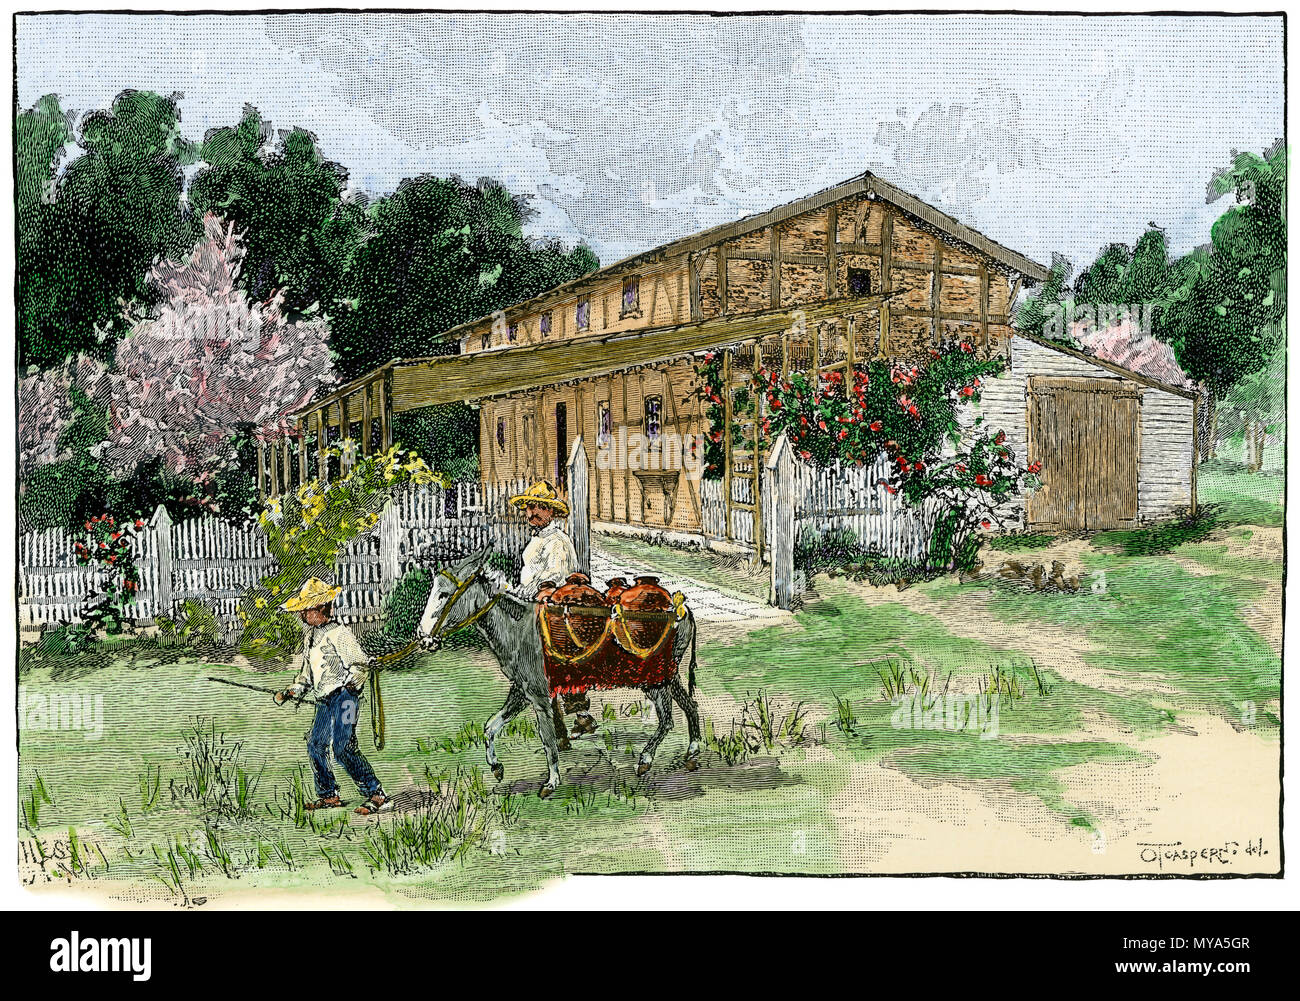 Storehouse of General Vallejo at his home in Sonoma CA, made with timbers imported from Switzerland. Hand-colored woodcut - Stock Image